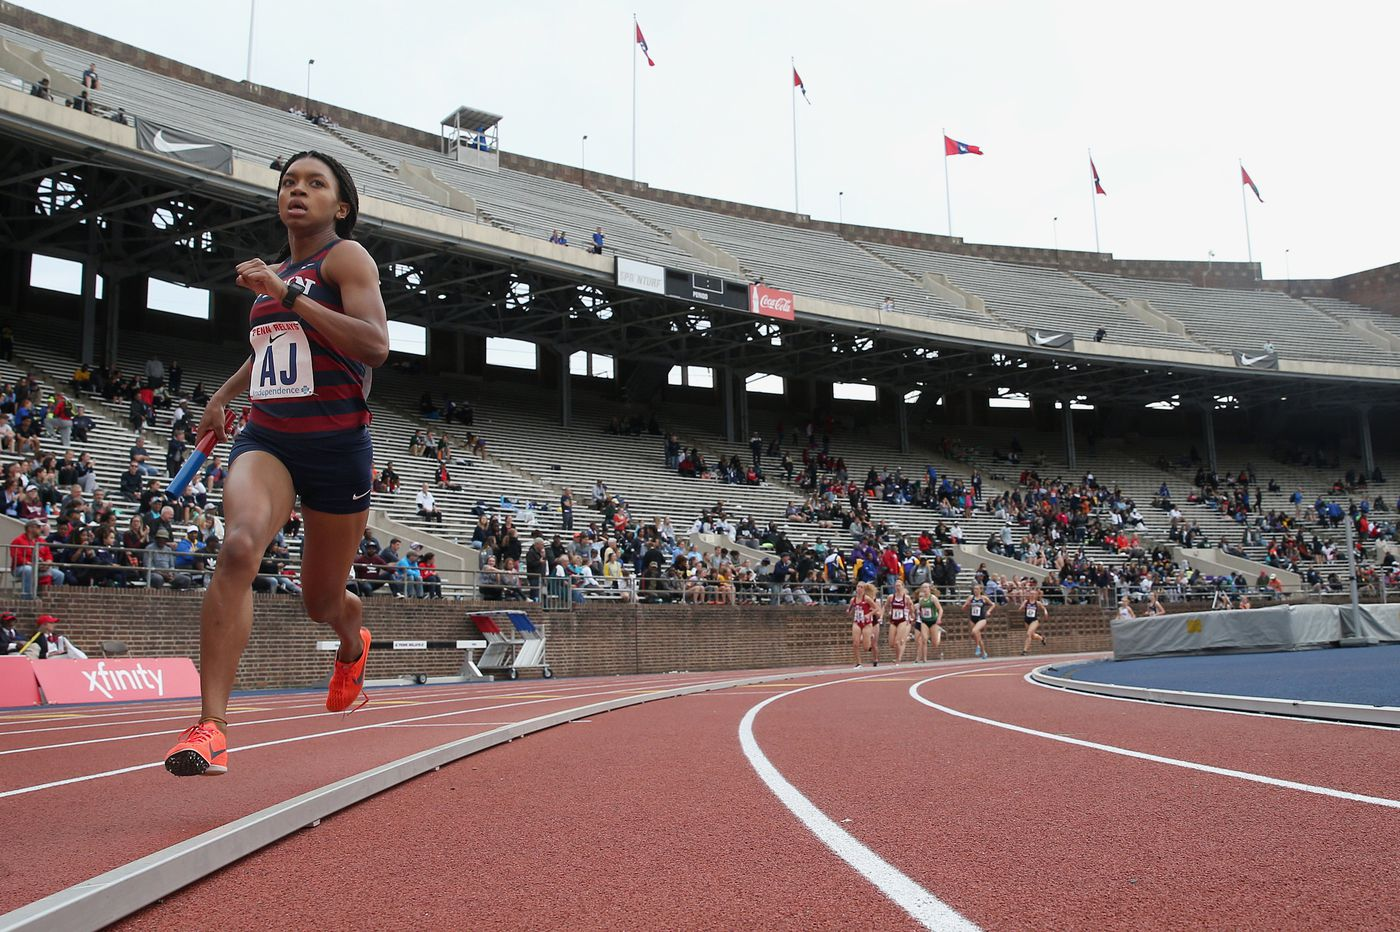 Penn track star and Olympic hopeful Nia Akins tones down her rigorous schedule